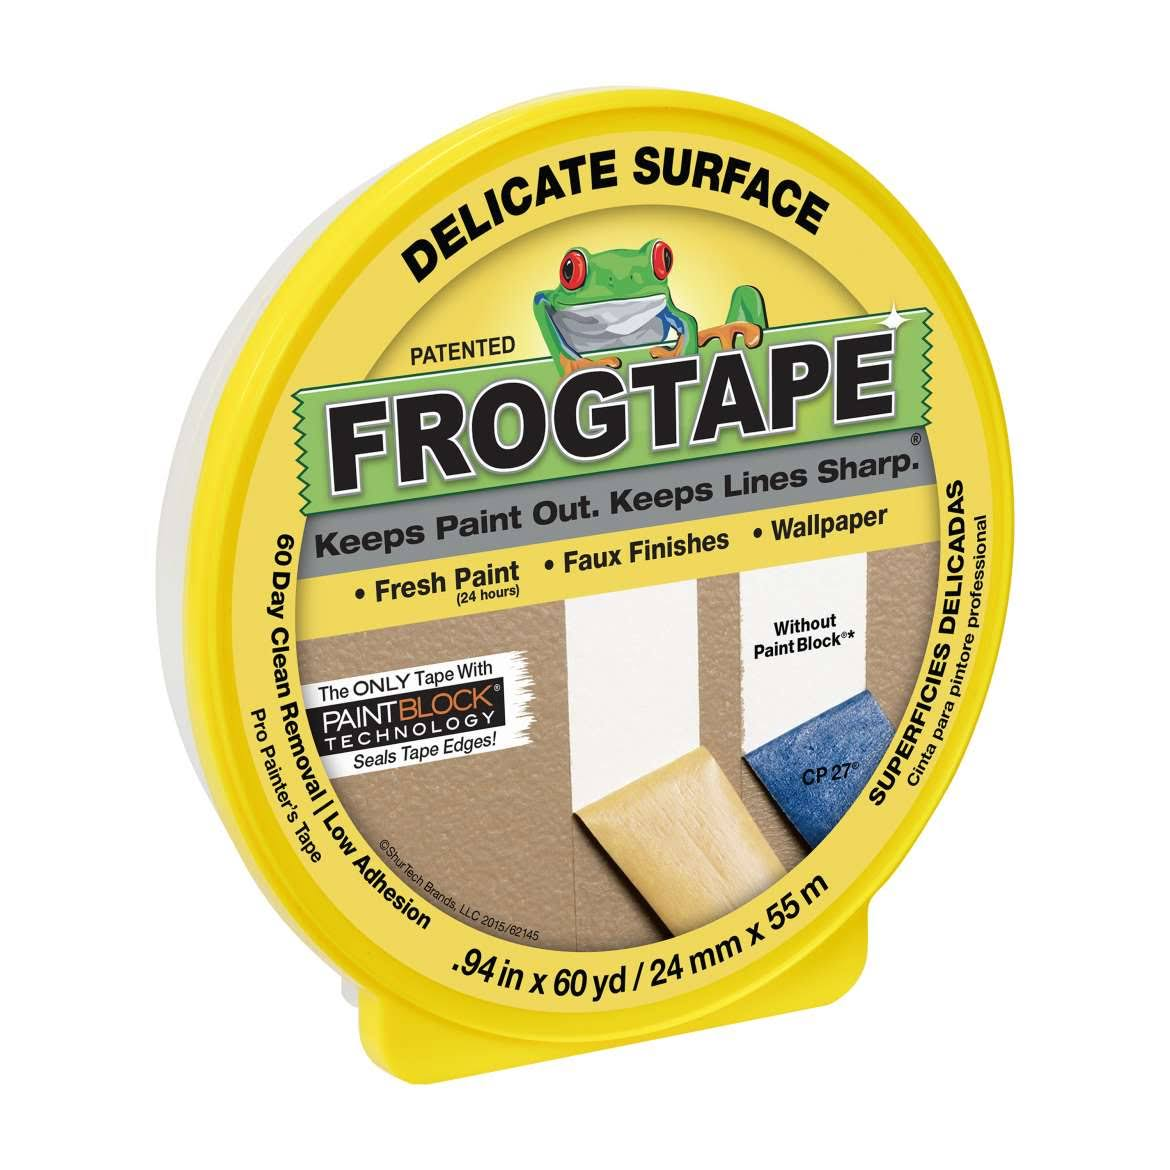 FrogTape Delicate Surface Painting Tape - Yellow, 0.94'' x 60 yds